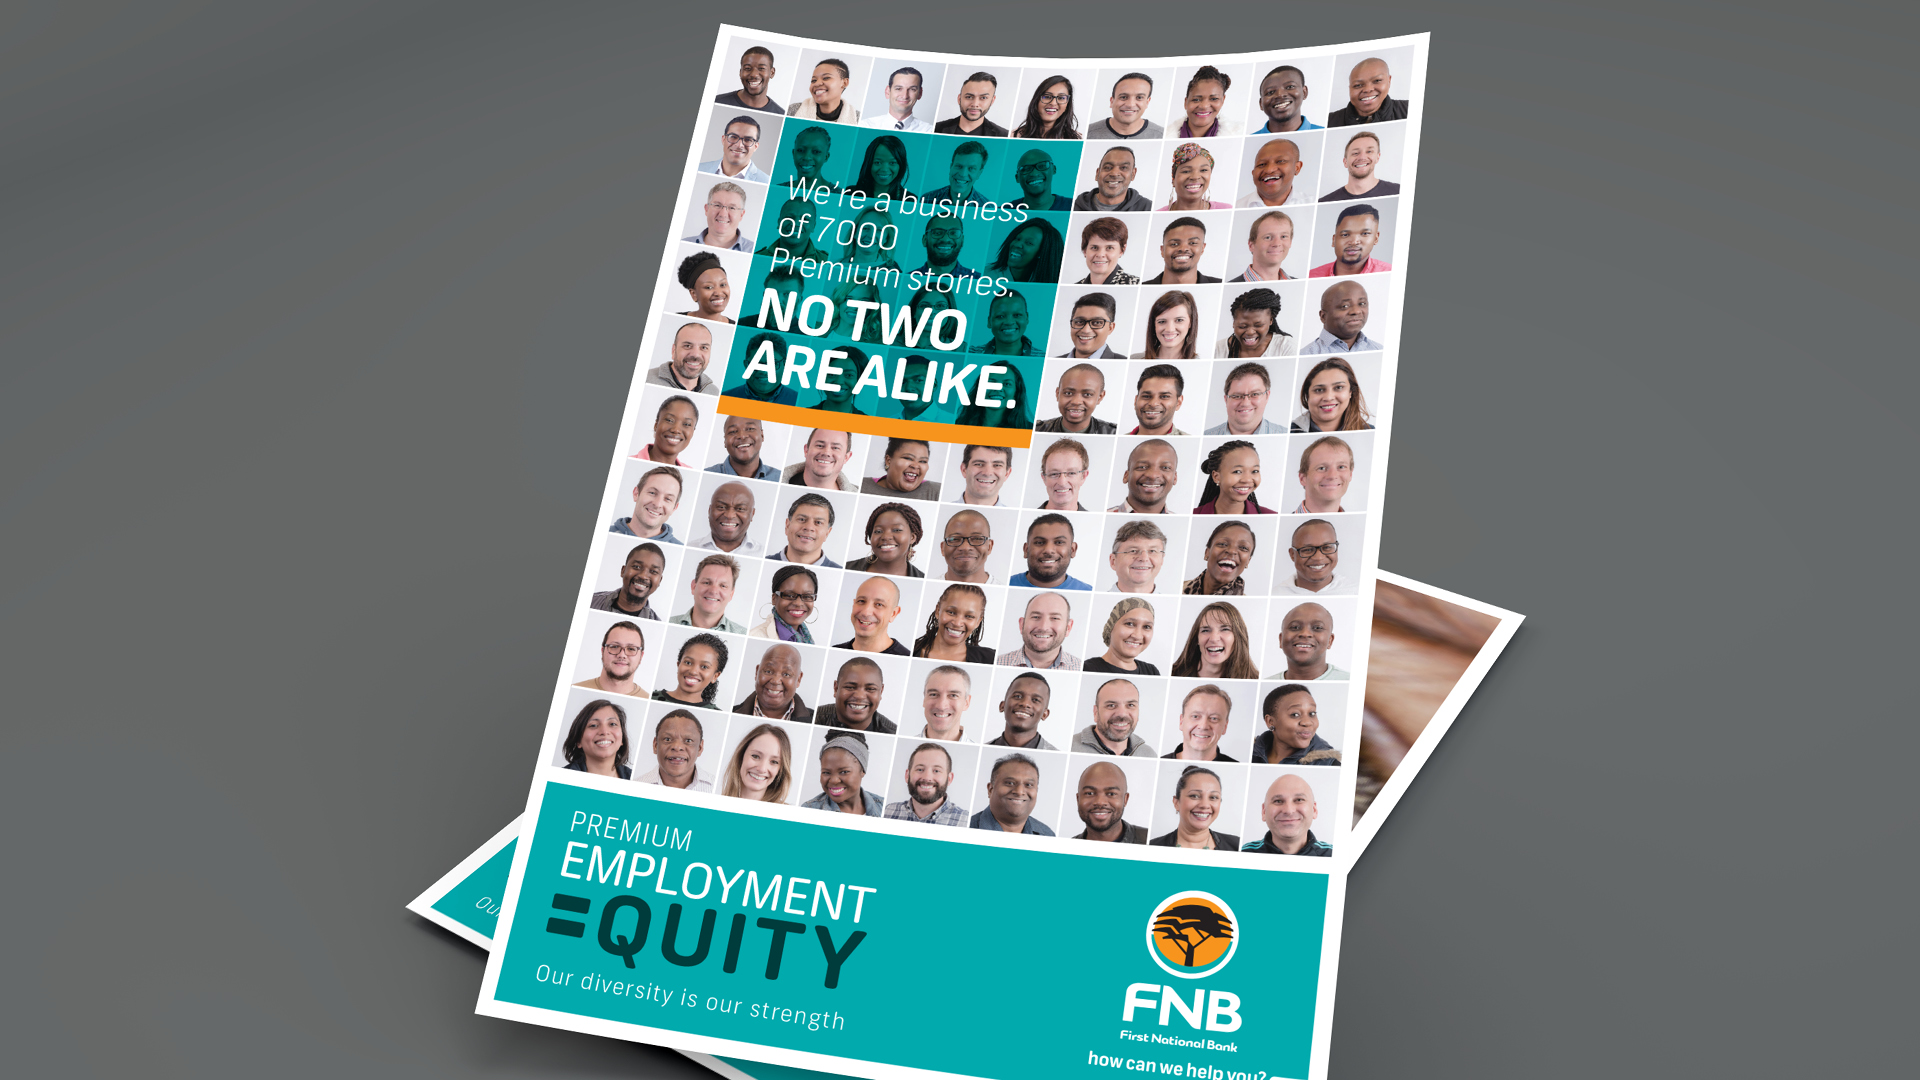 Fnb employment equity jaw design top small creative agency johannesburg cheaphphosting Gallery